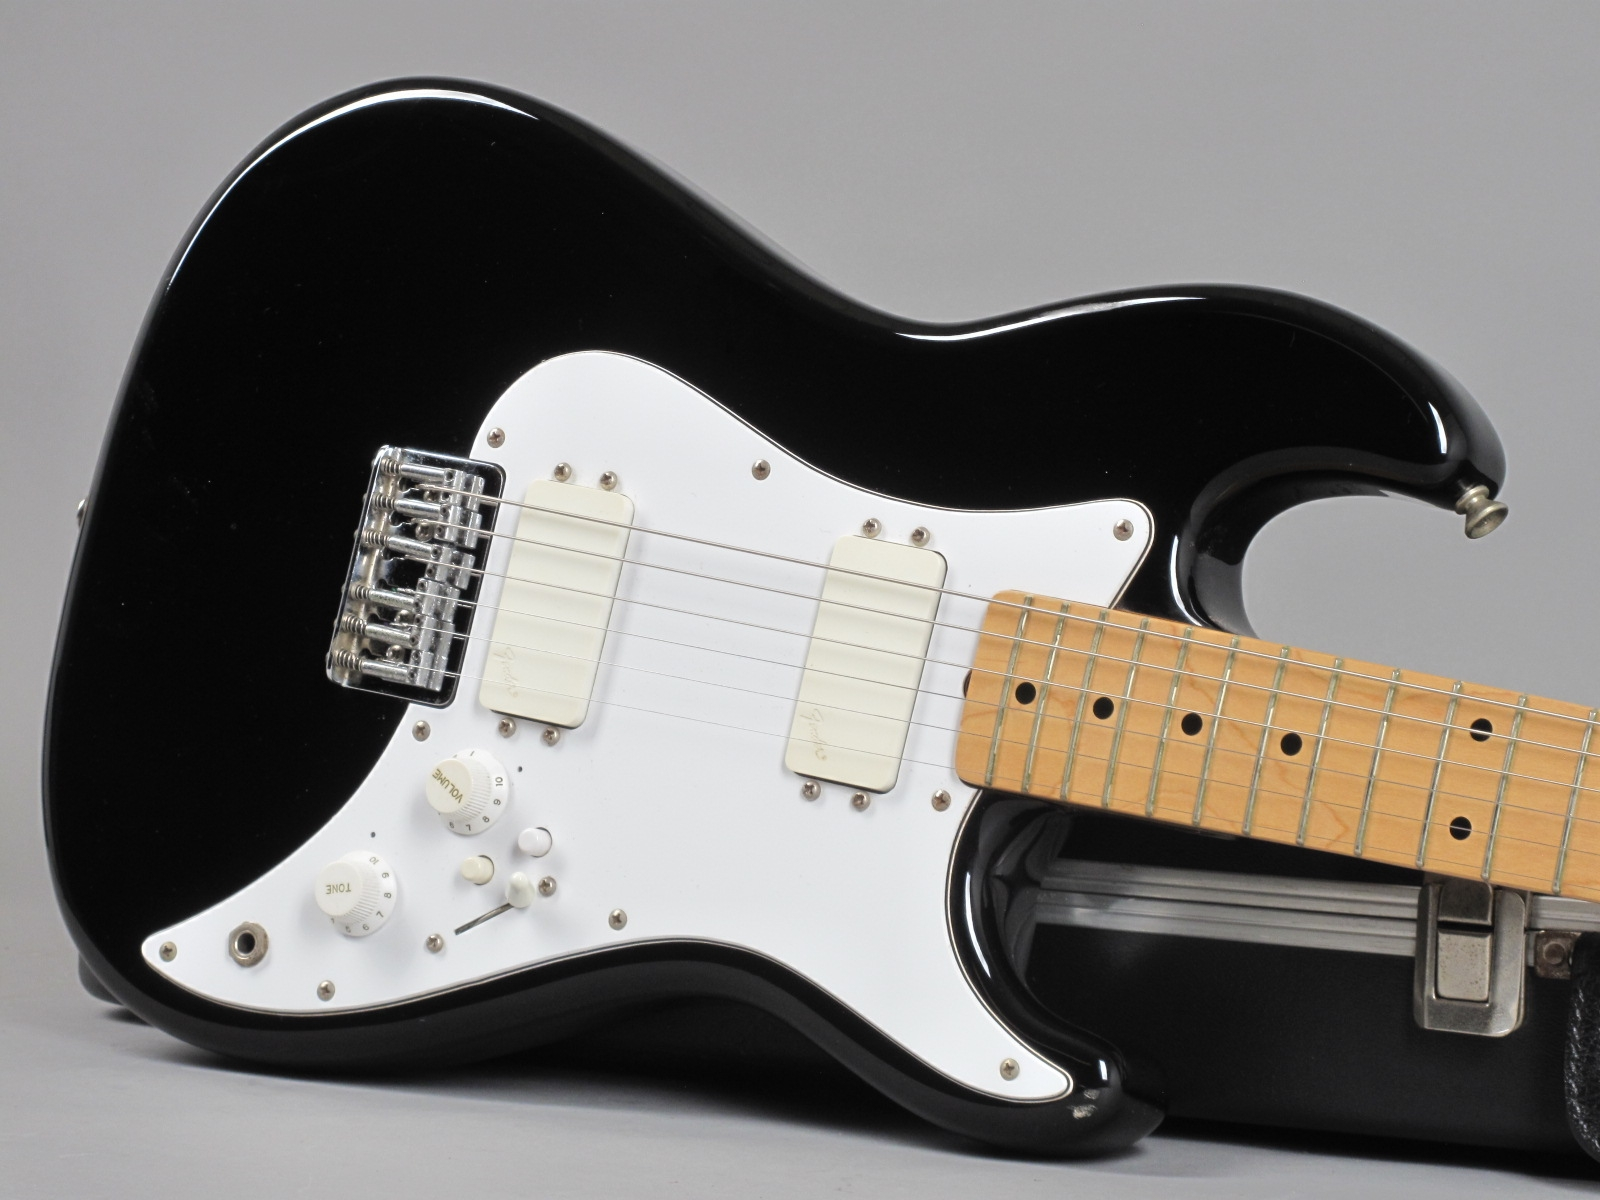 https://guitarpoint.de/app/uploads/products/1984-fender-squier-bullet-black/1982-Squier-Bullet-I-Black-SQ24241-19.jpg